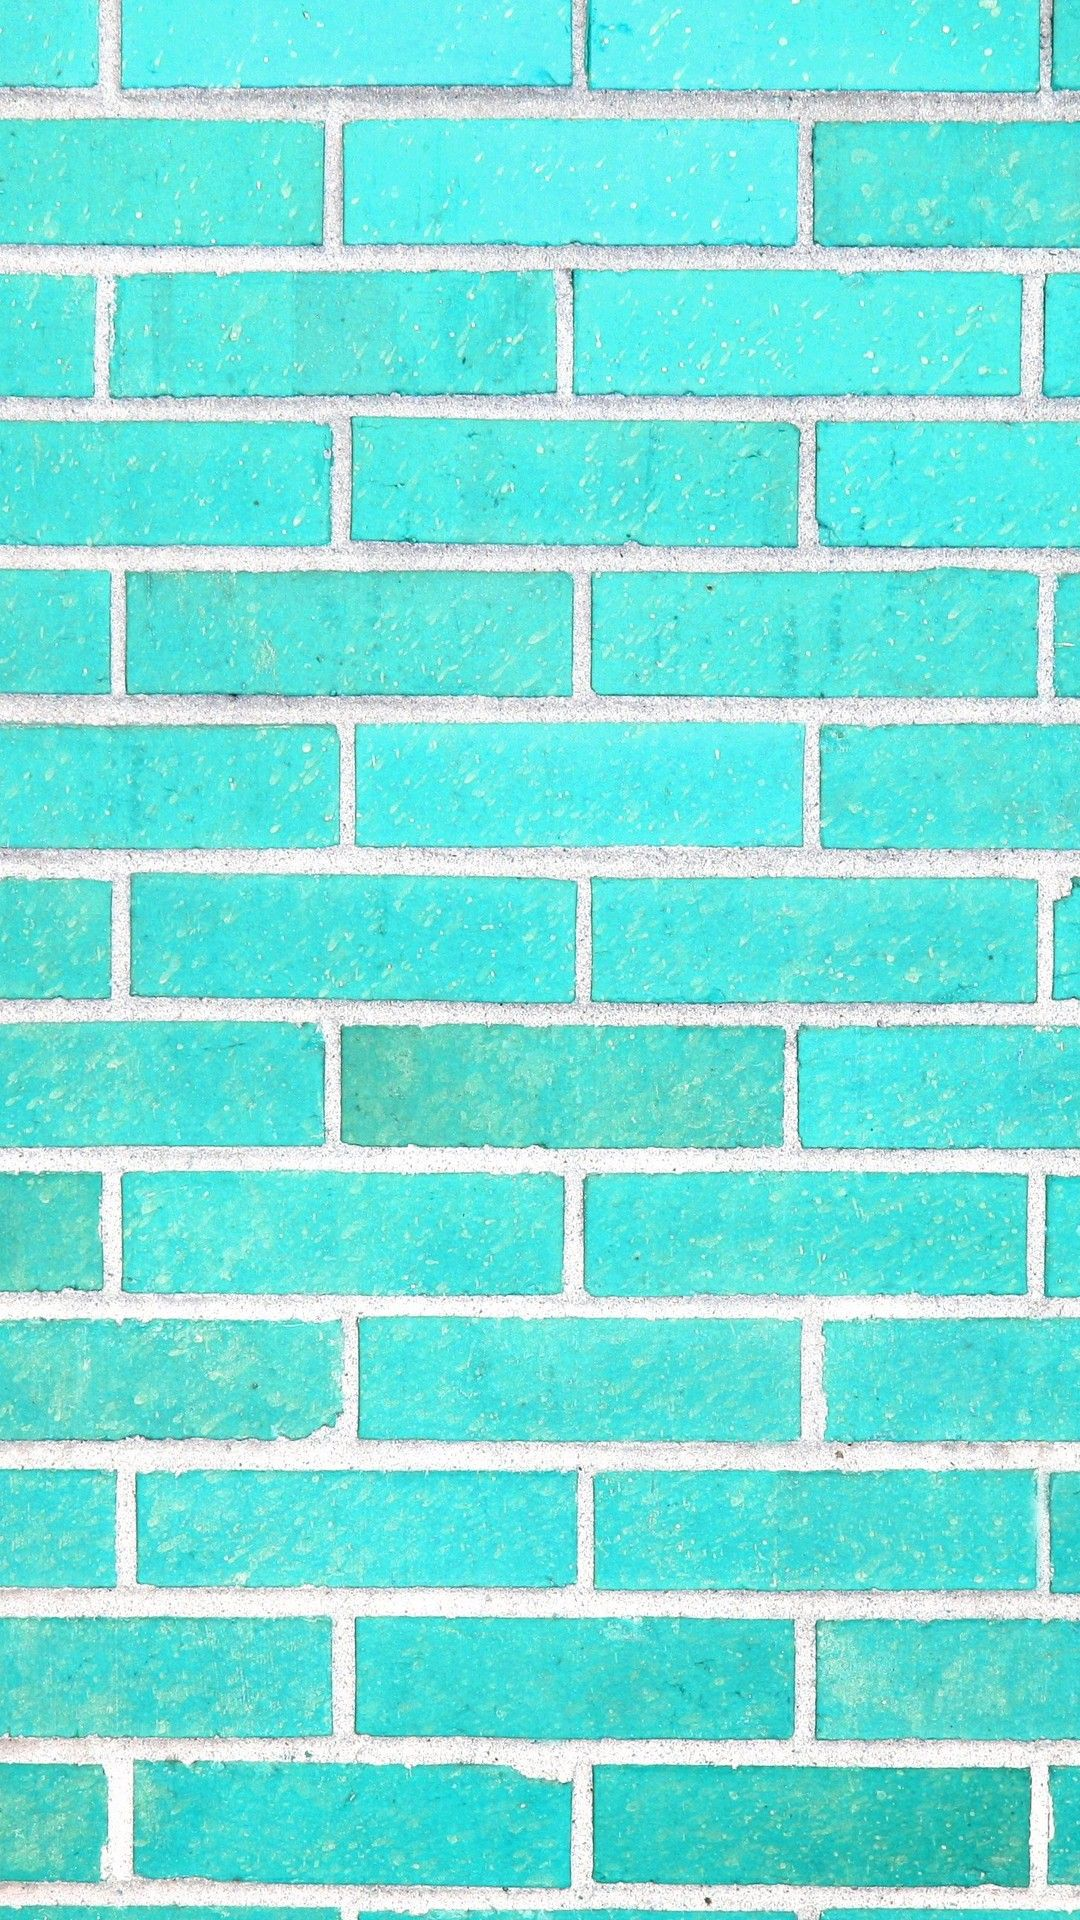 Teal iPhone Wallpapers Teal wallpaper iphone, Mint green